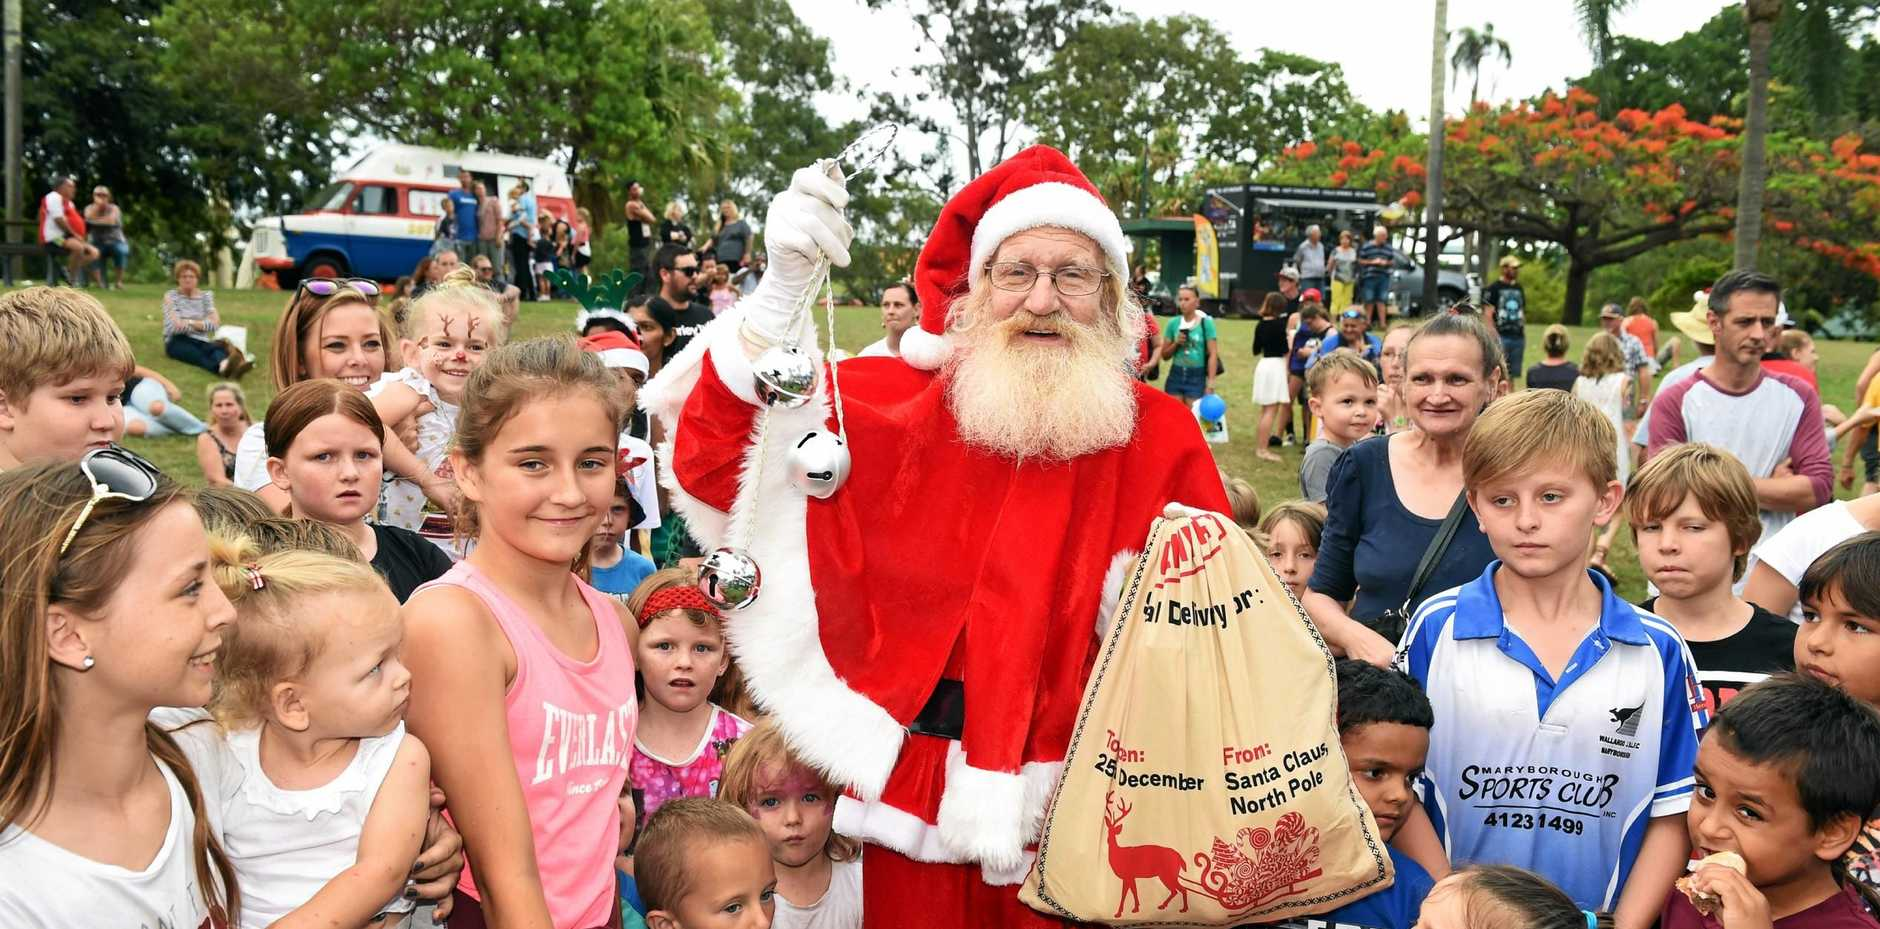 Santa arrived in the Apex train to join in the Santa fair at last year's Fraser Coast Carols in the Park and Apex Santa Fair. This year's event will be held at the Maryborough Showgrounds.